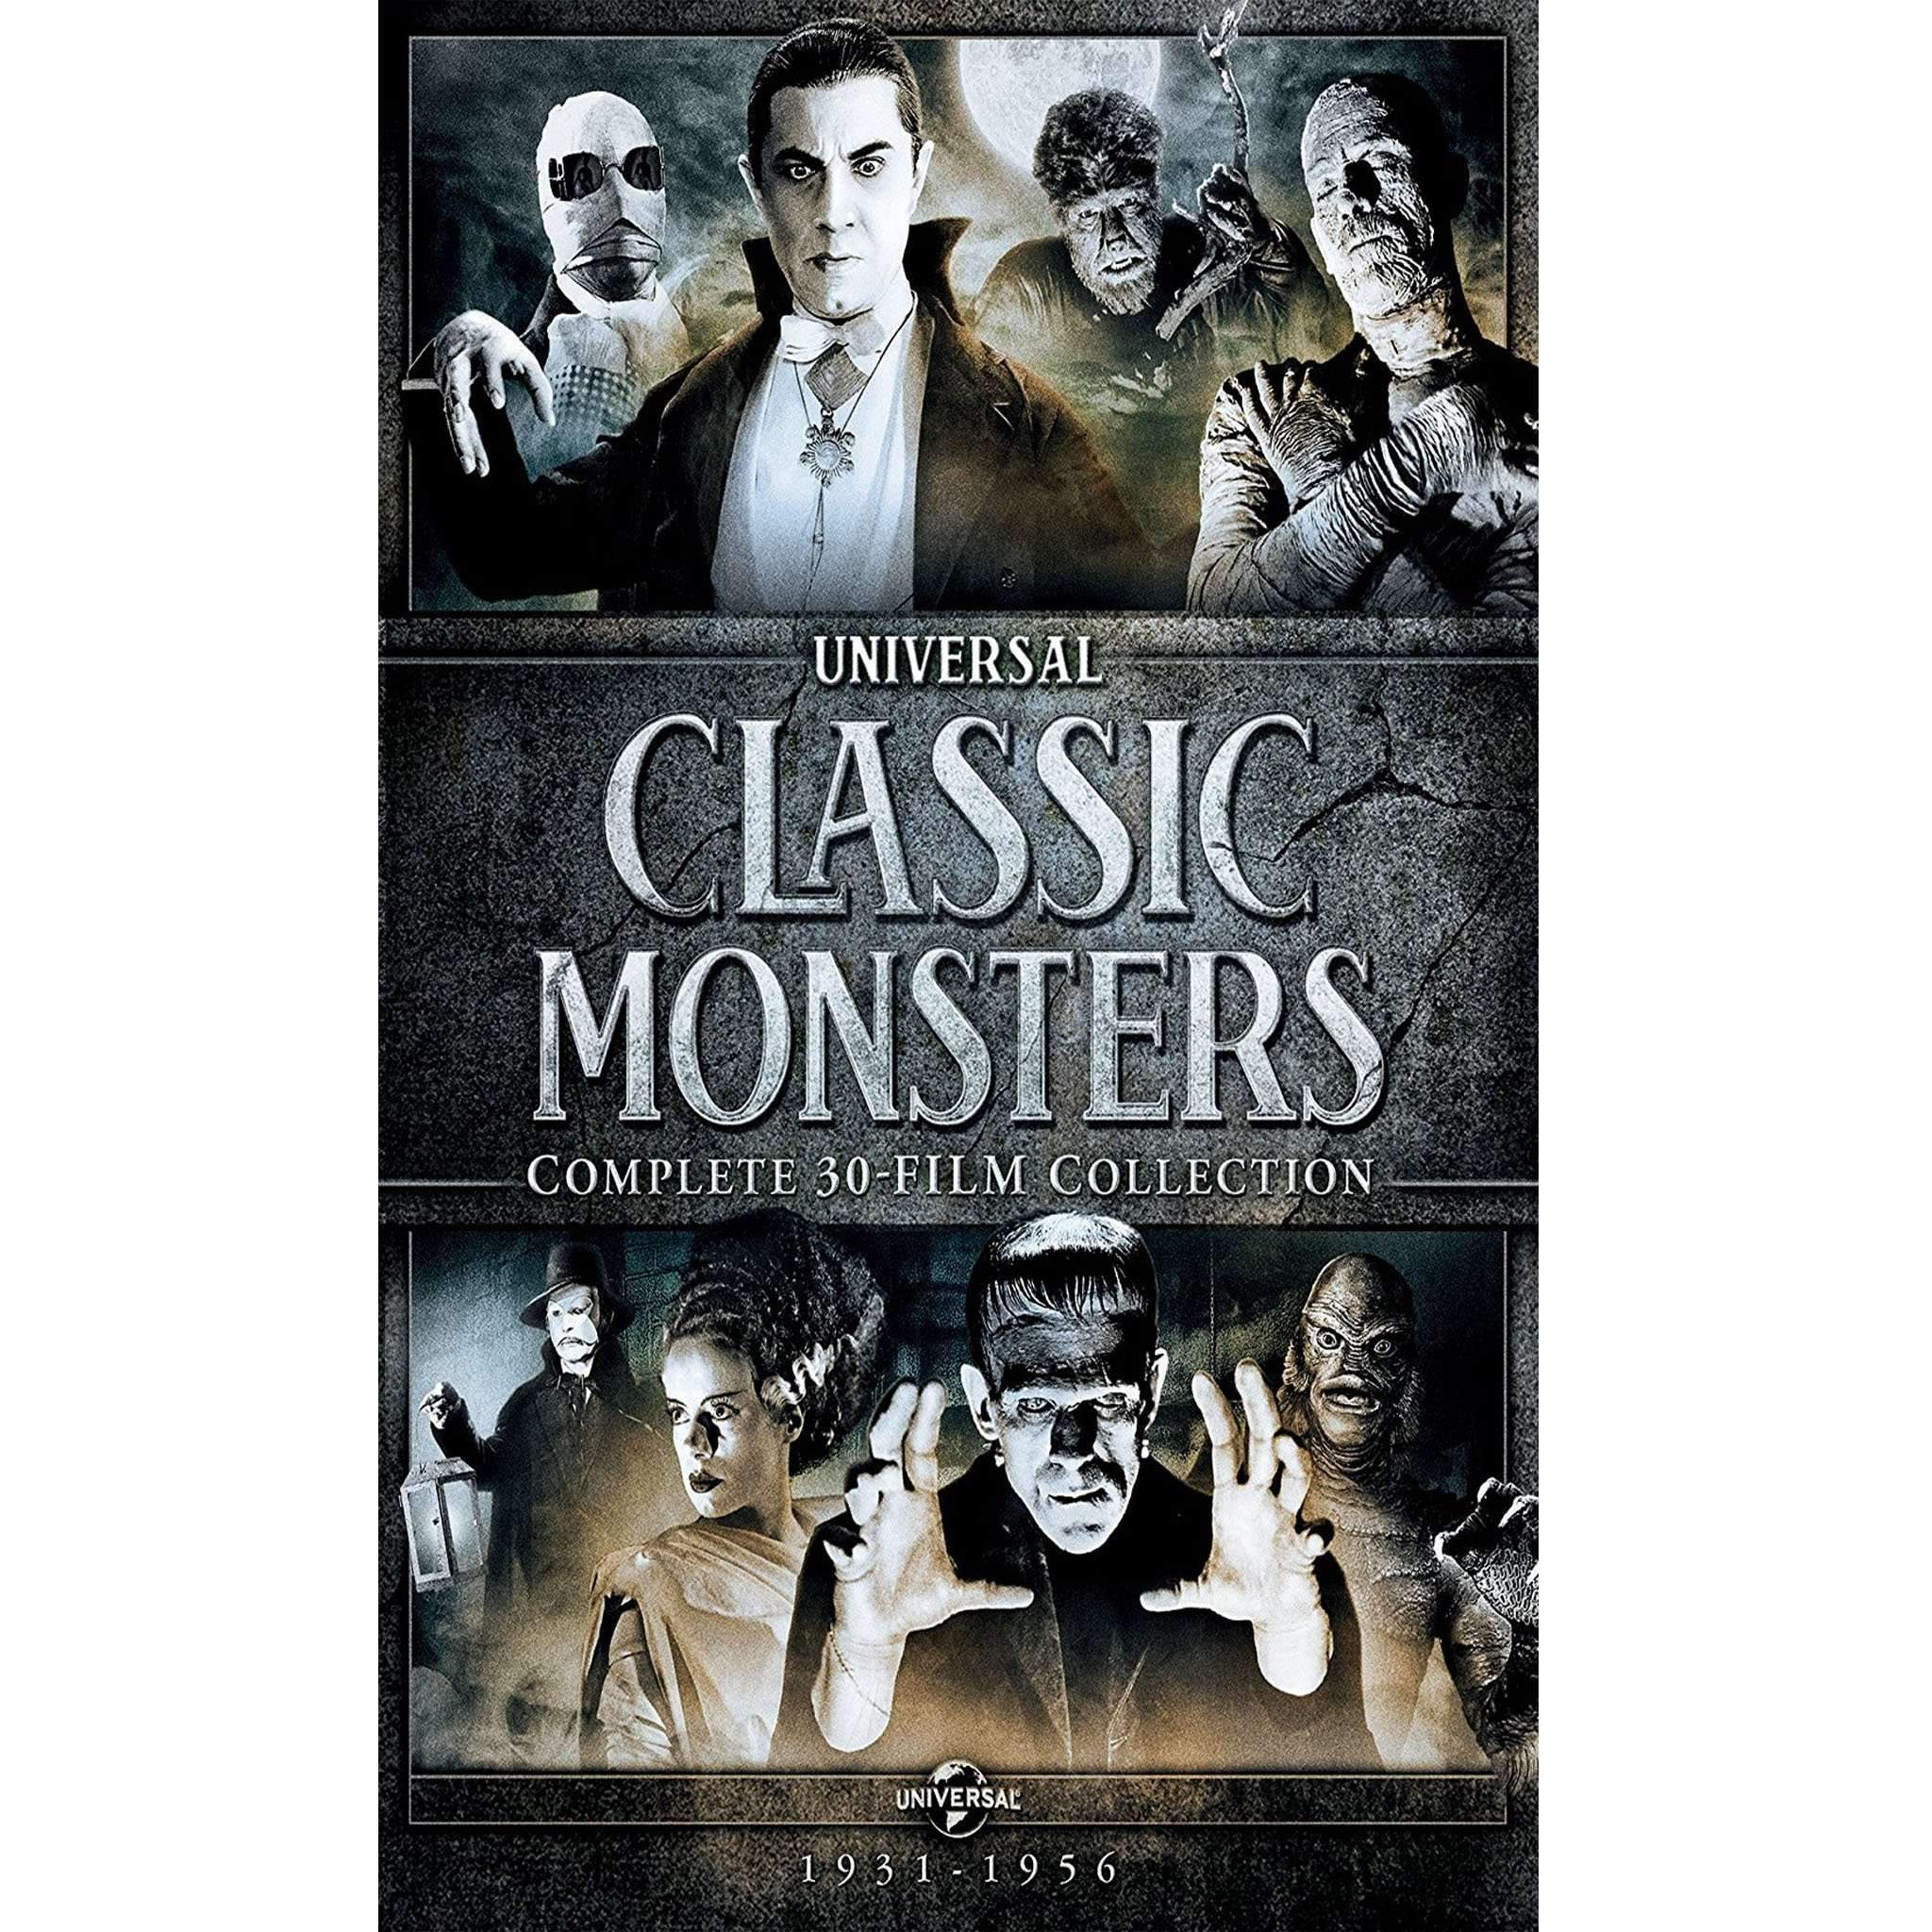 Universal Classic Monsters DVD Collection (Complete 30-Film Collection) Universal Studios DVDs & Blu-ray Discs > DVDs > Box Sets